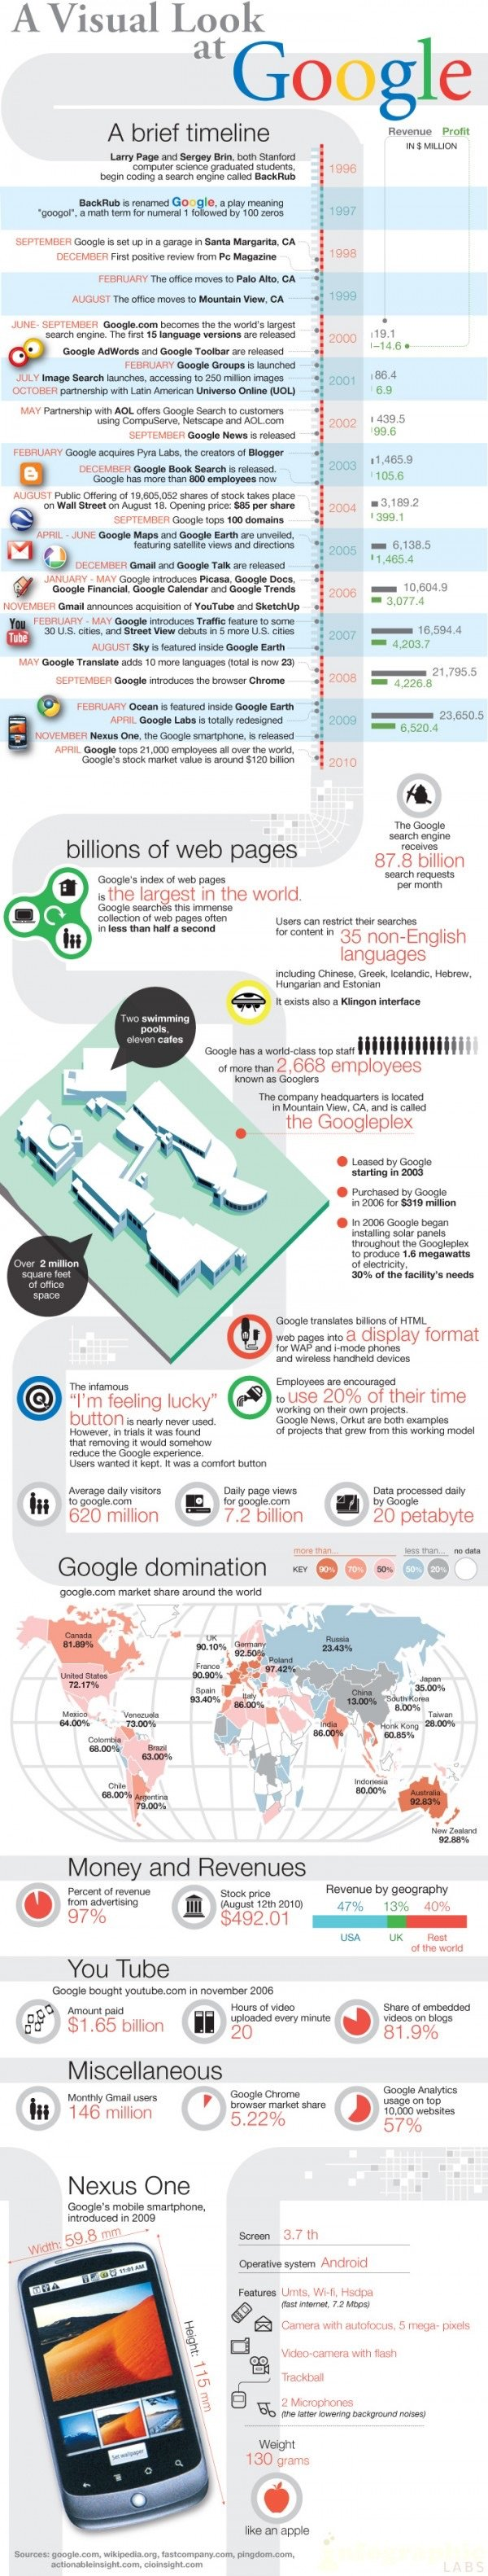 Google spends 2.8 Billion dollars on resesrch yearly #Infographic